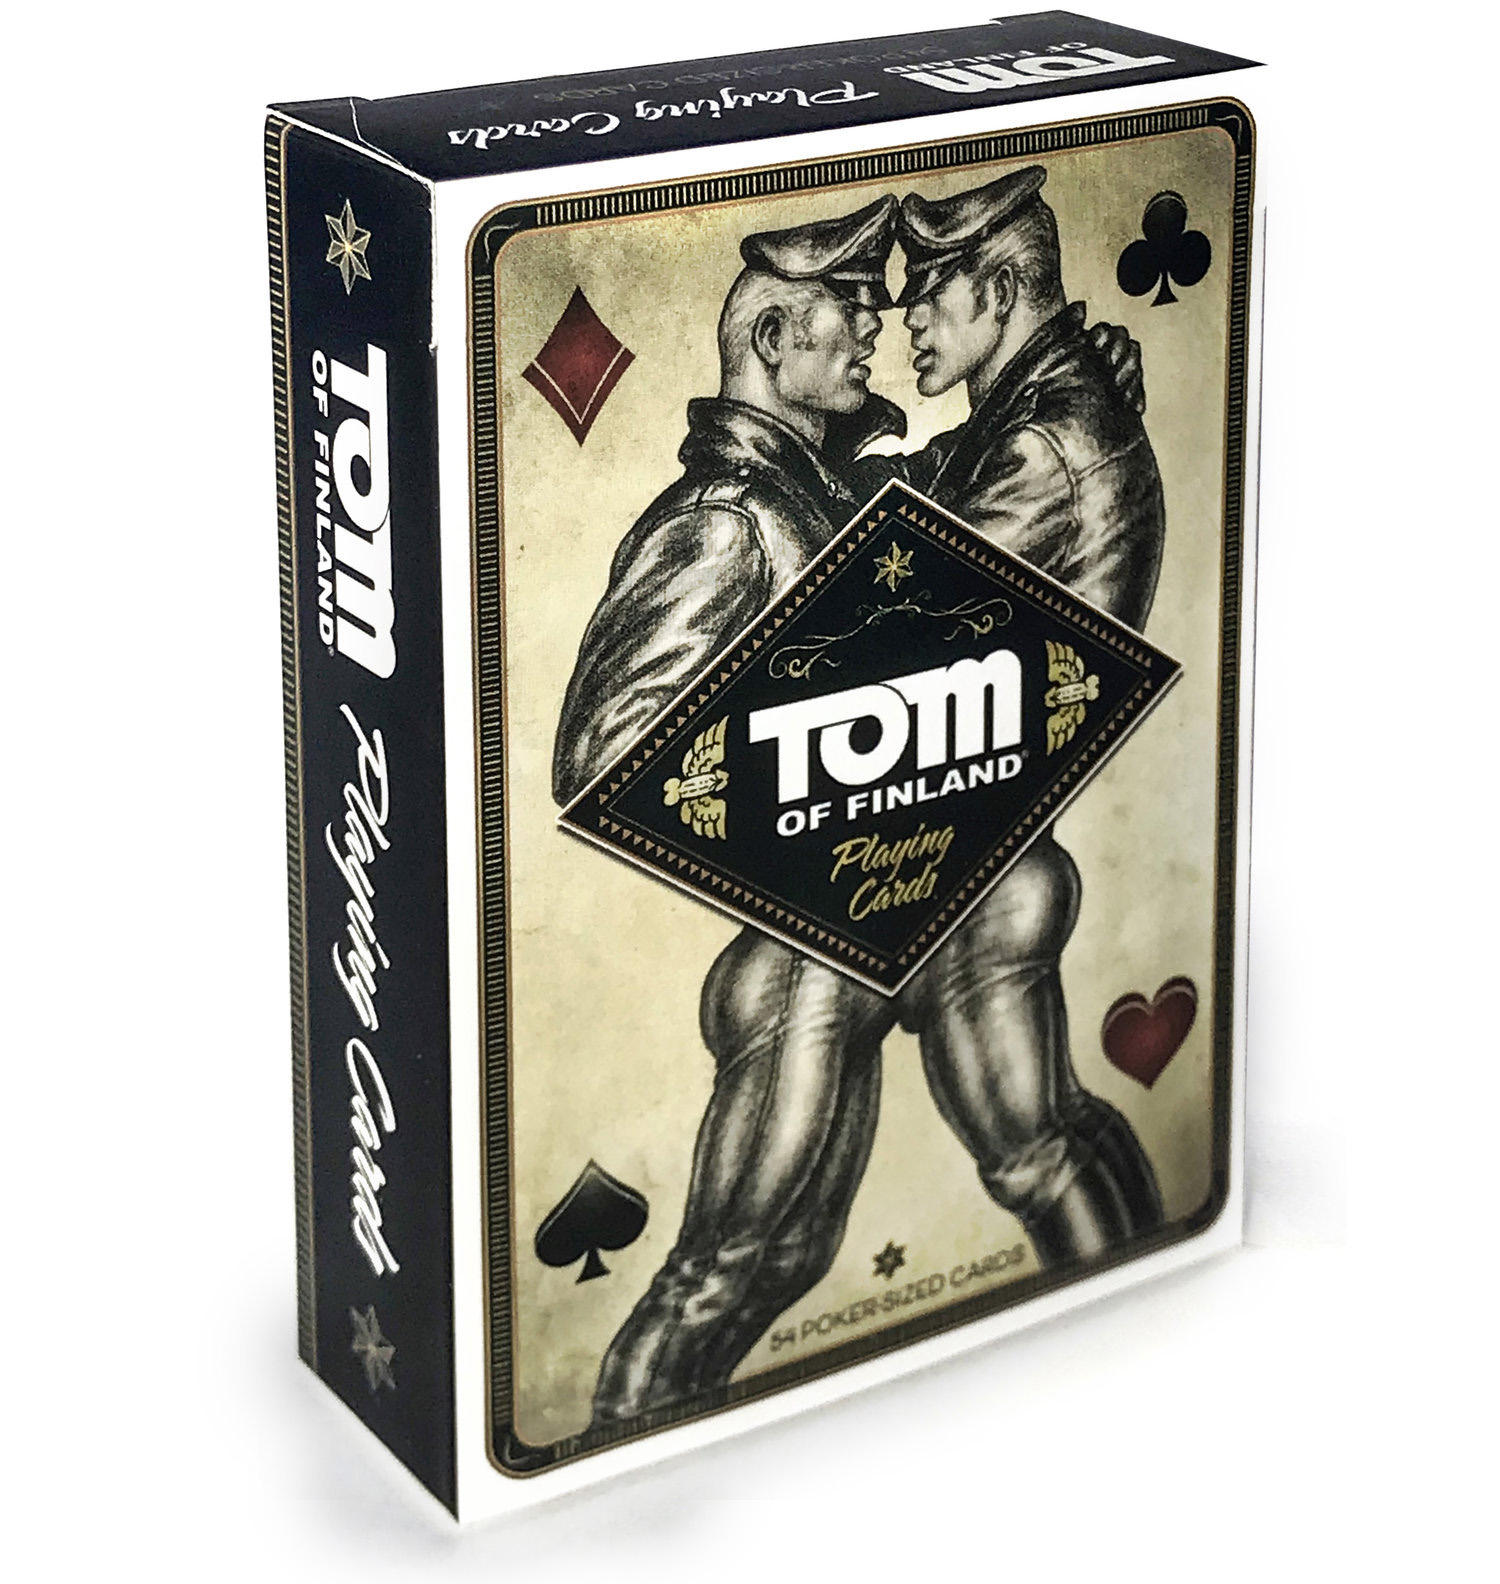 Tom of finland playing cards box.jpg